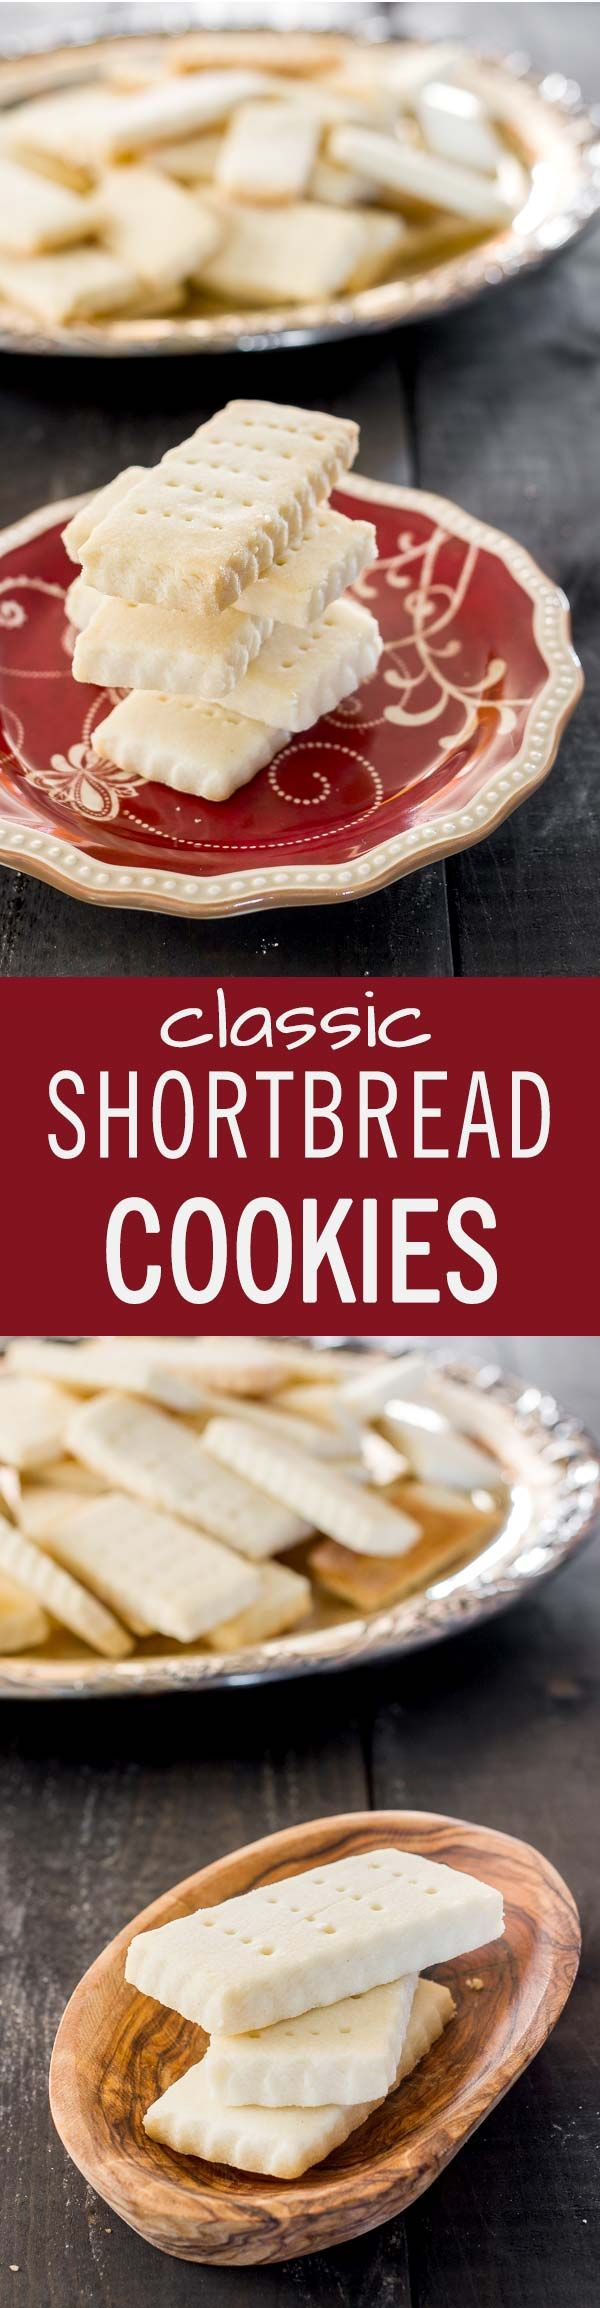 A classic recipe for the best shortbread cookies. They're buttery, sweet, delicious and best of all, homemade.